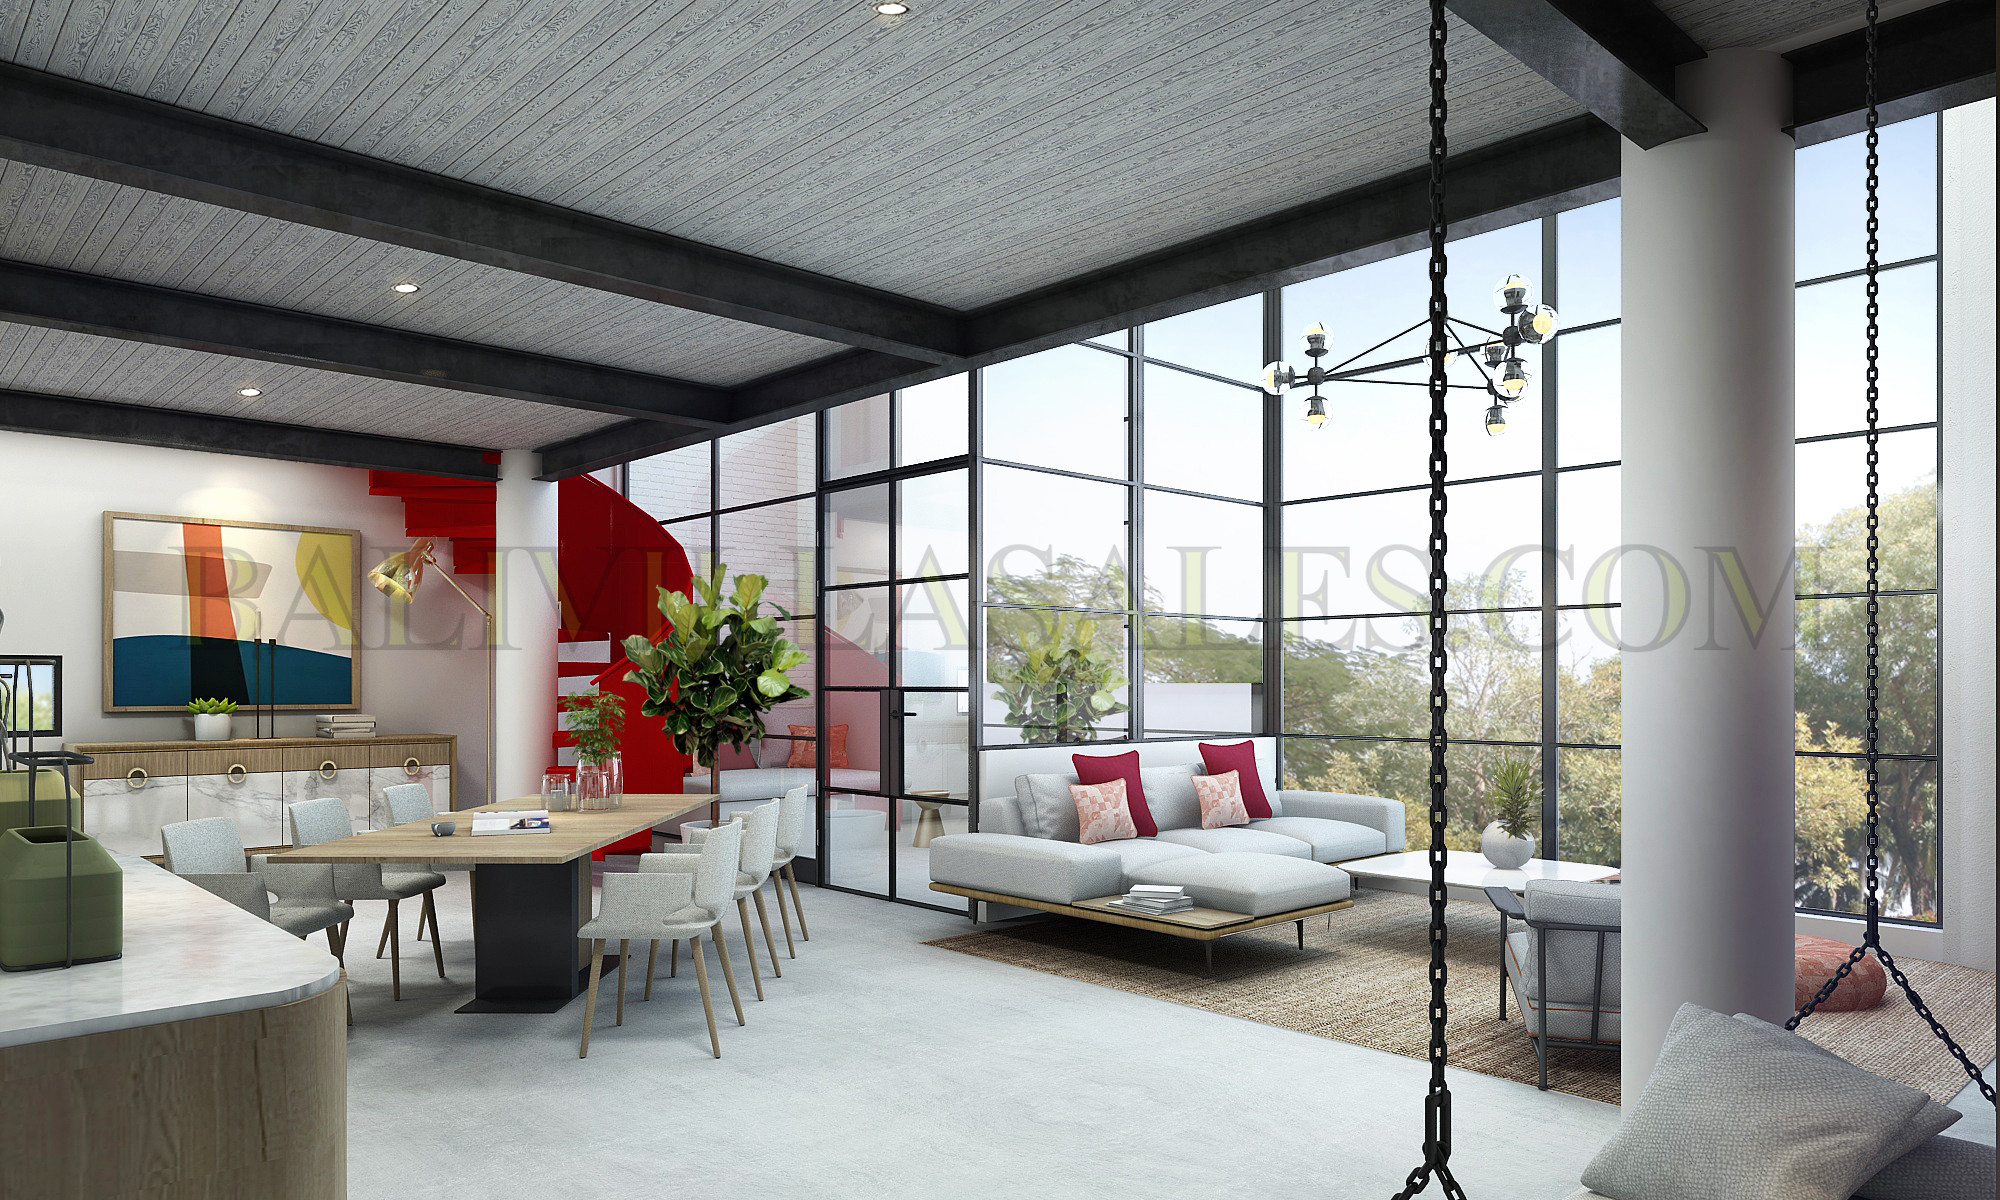 2 Bedrooms Mezzanine Apartment with a striking modern design